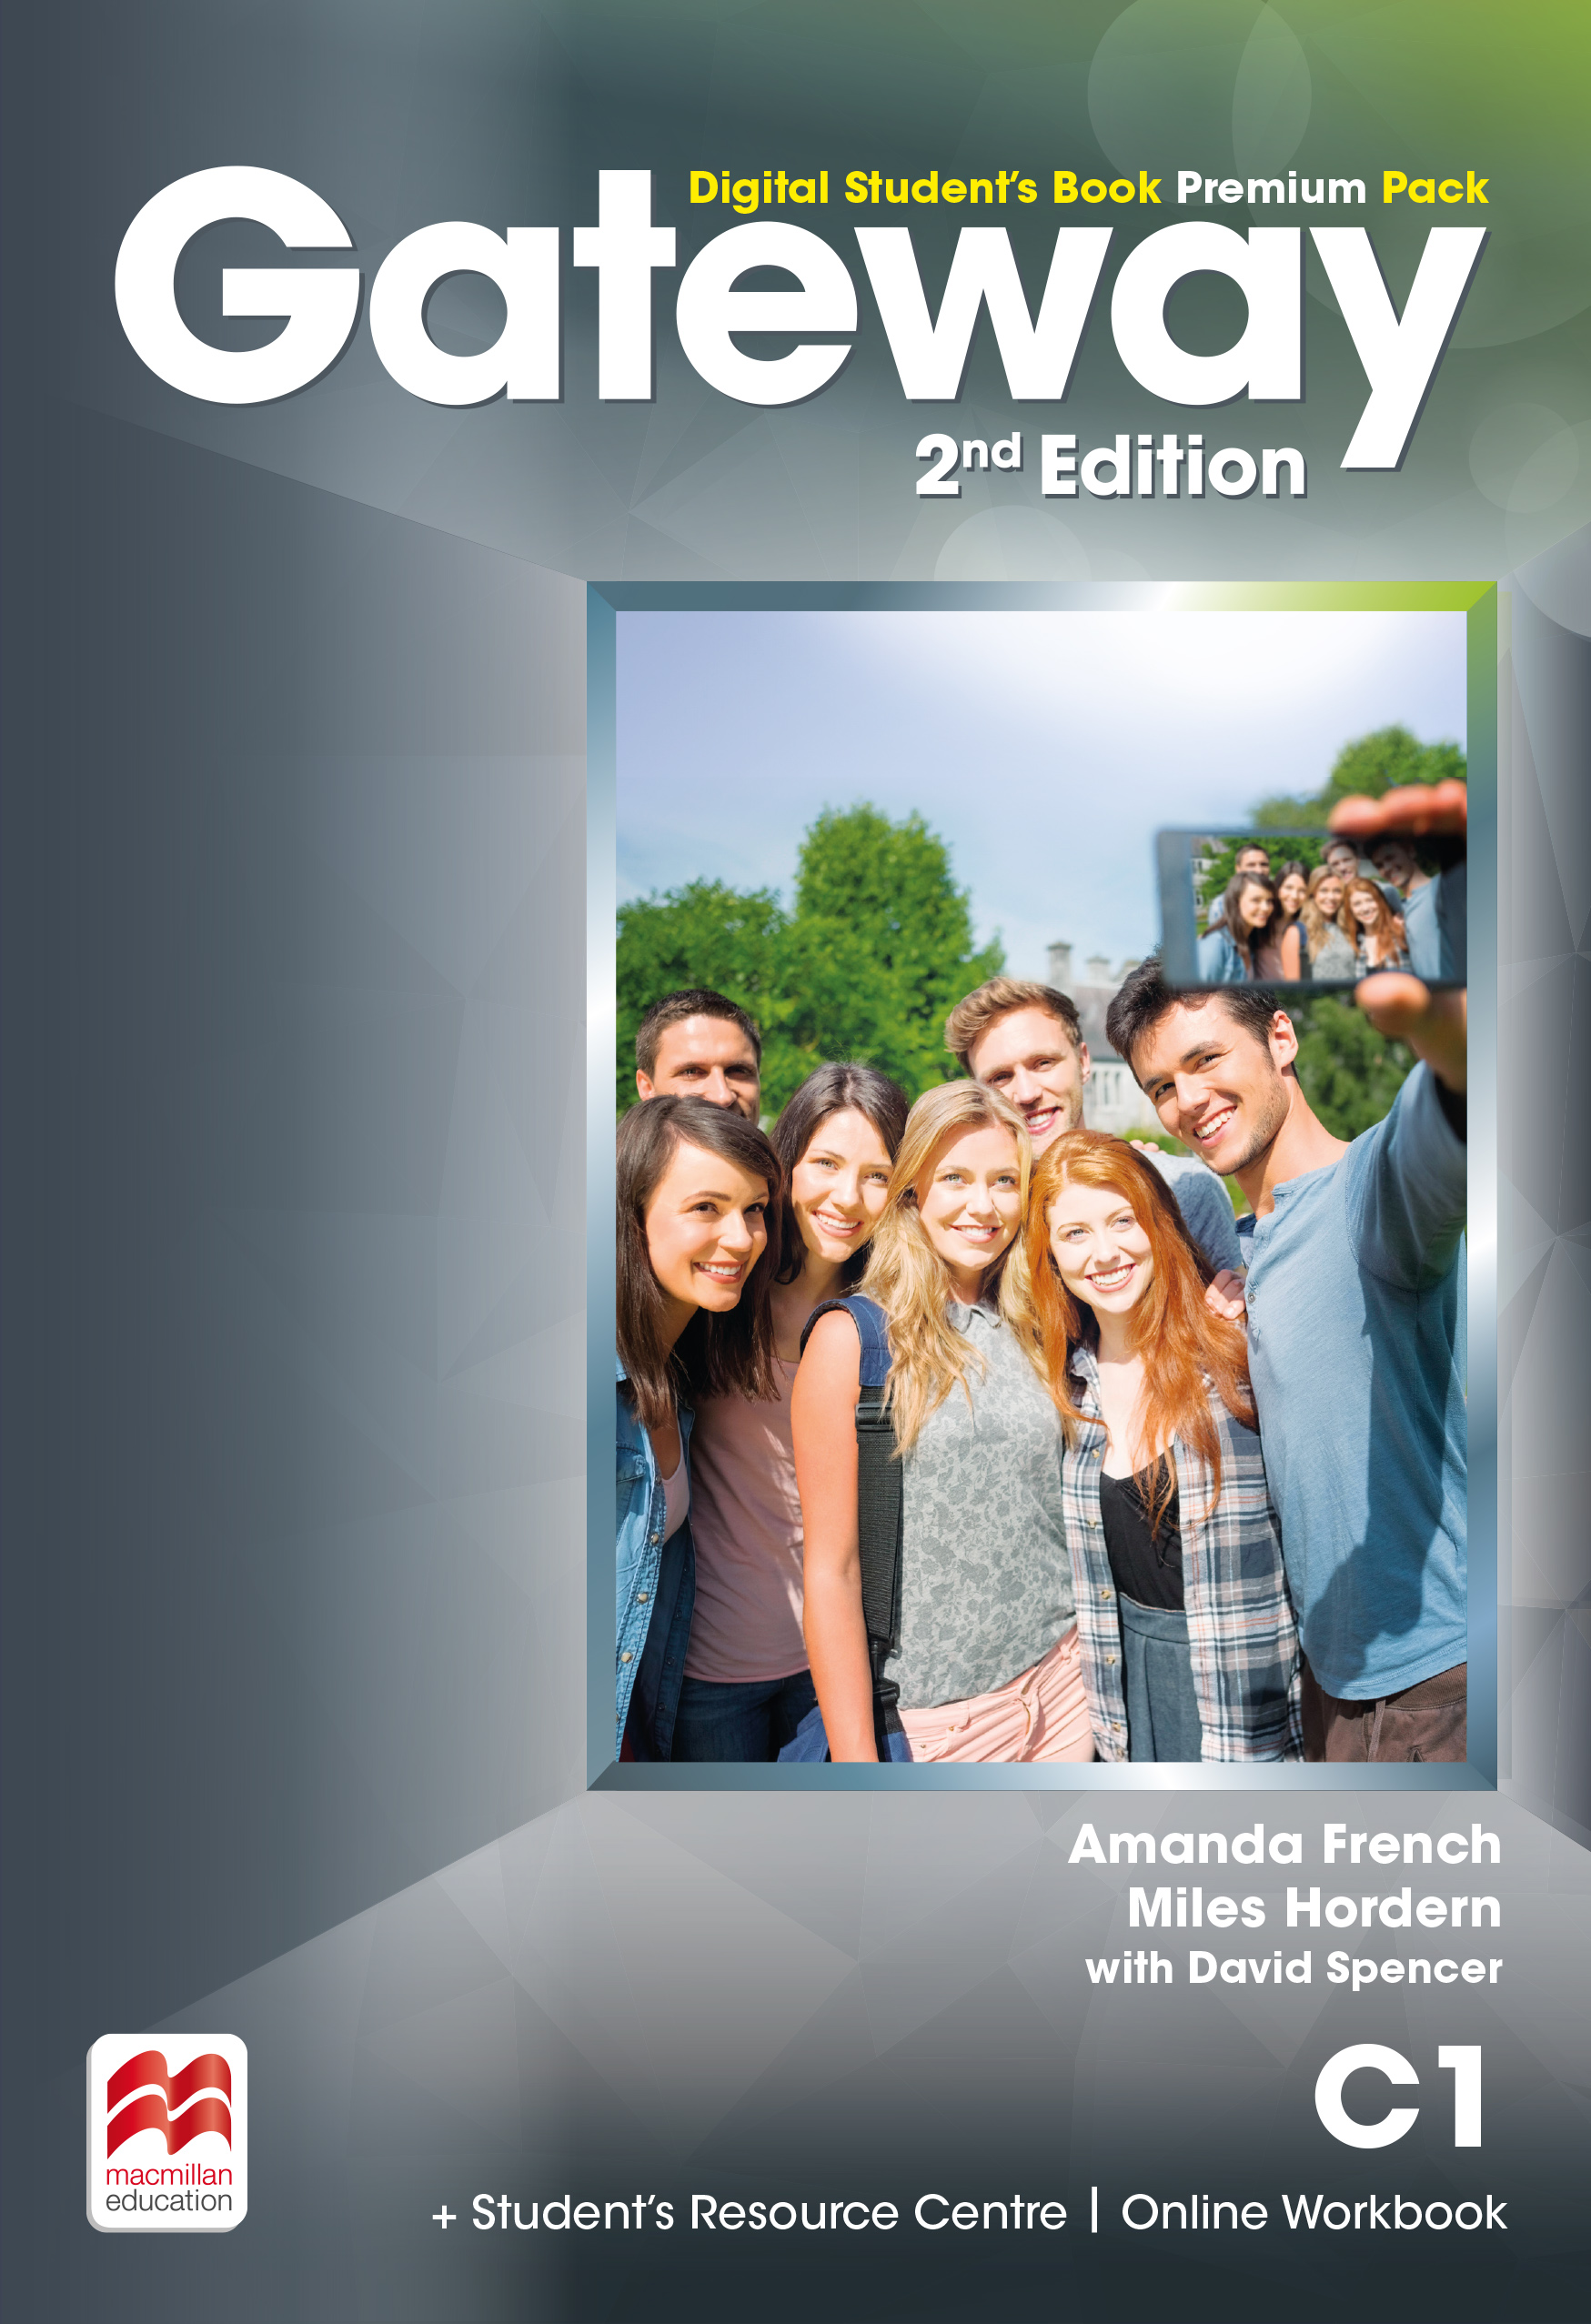 Gateway 2nd edition C1 Digital Student's Book Premium Pack